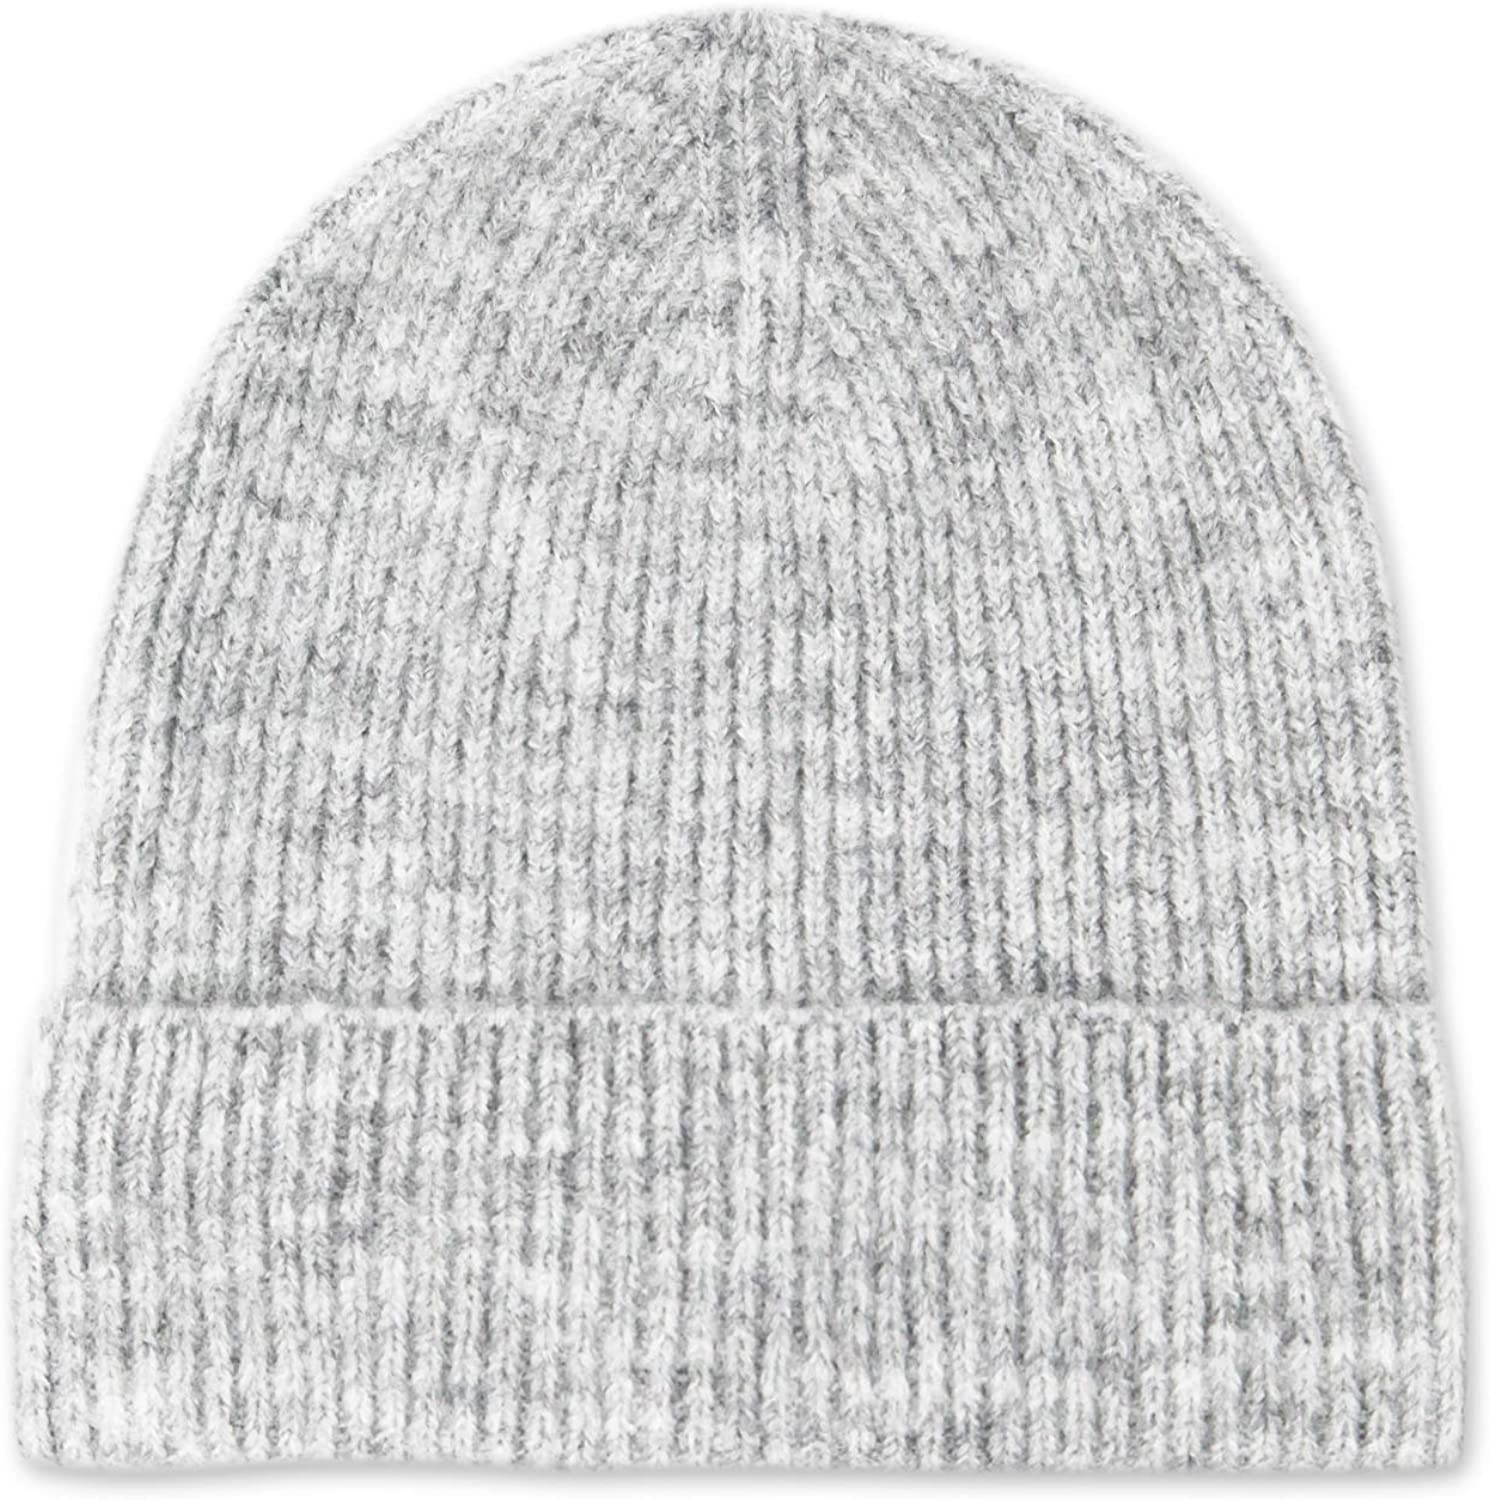 Moss Rose Womens Warm Soft Rib Knit Beanie Skully for Women Men Winter Cuffed Hats for Fall Winter Holiday